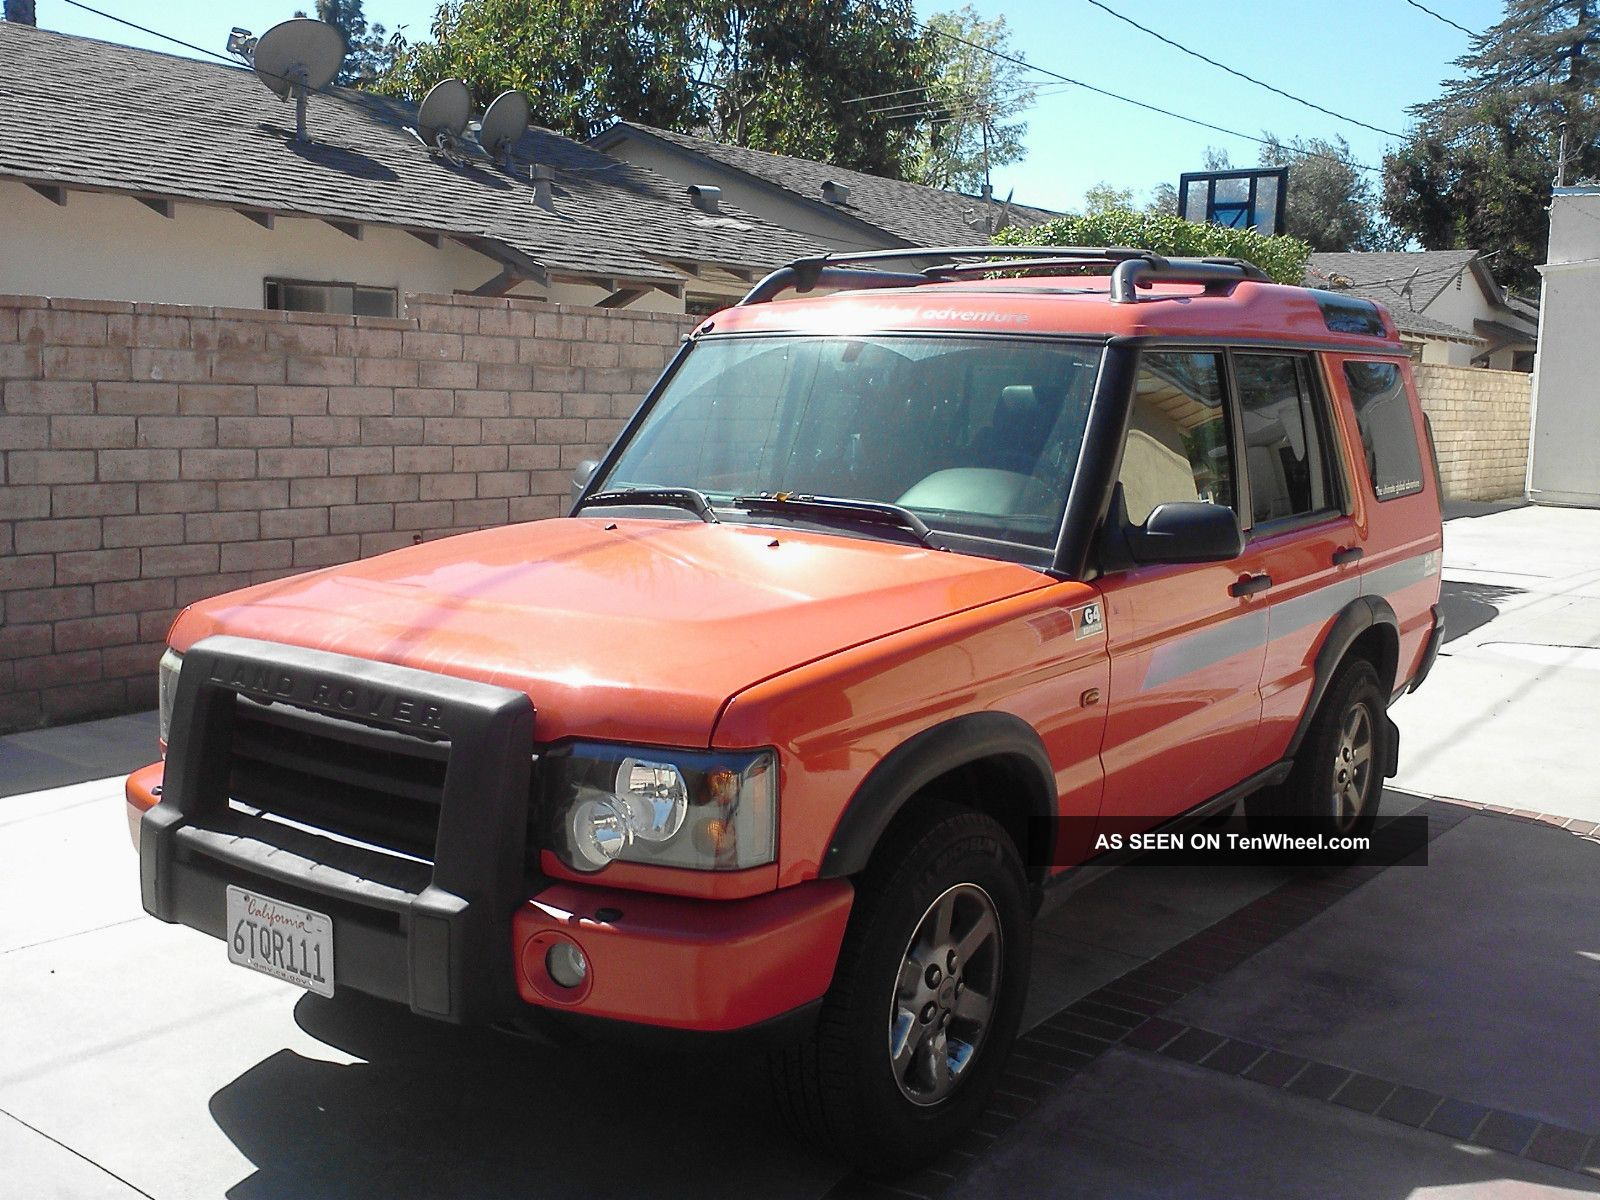 2004 orange land rover discovery g4 lmited edition. Black Bedroom Furniture Sets. Home Design Ideas